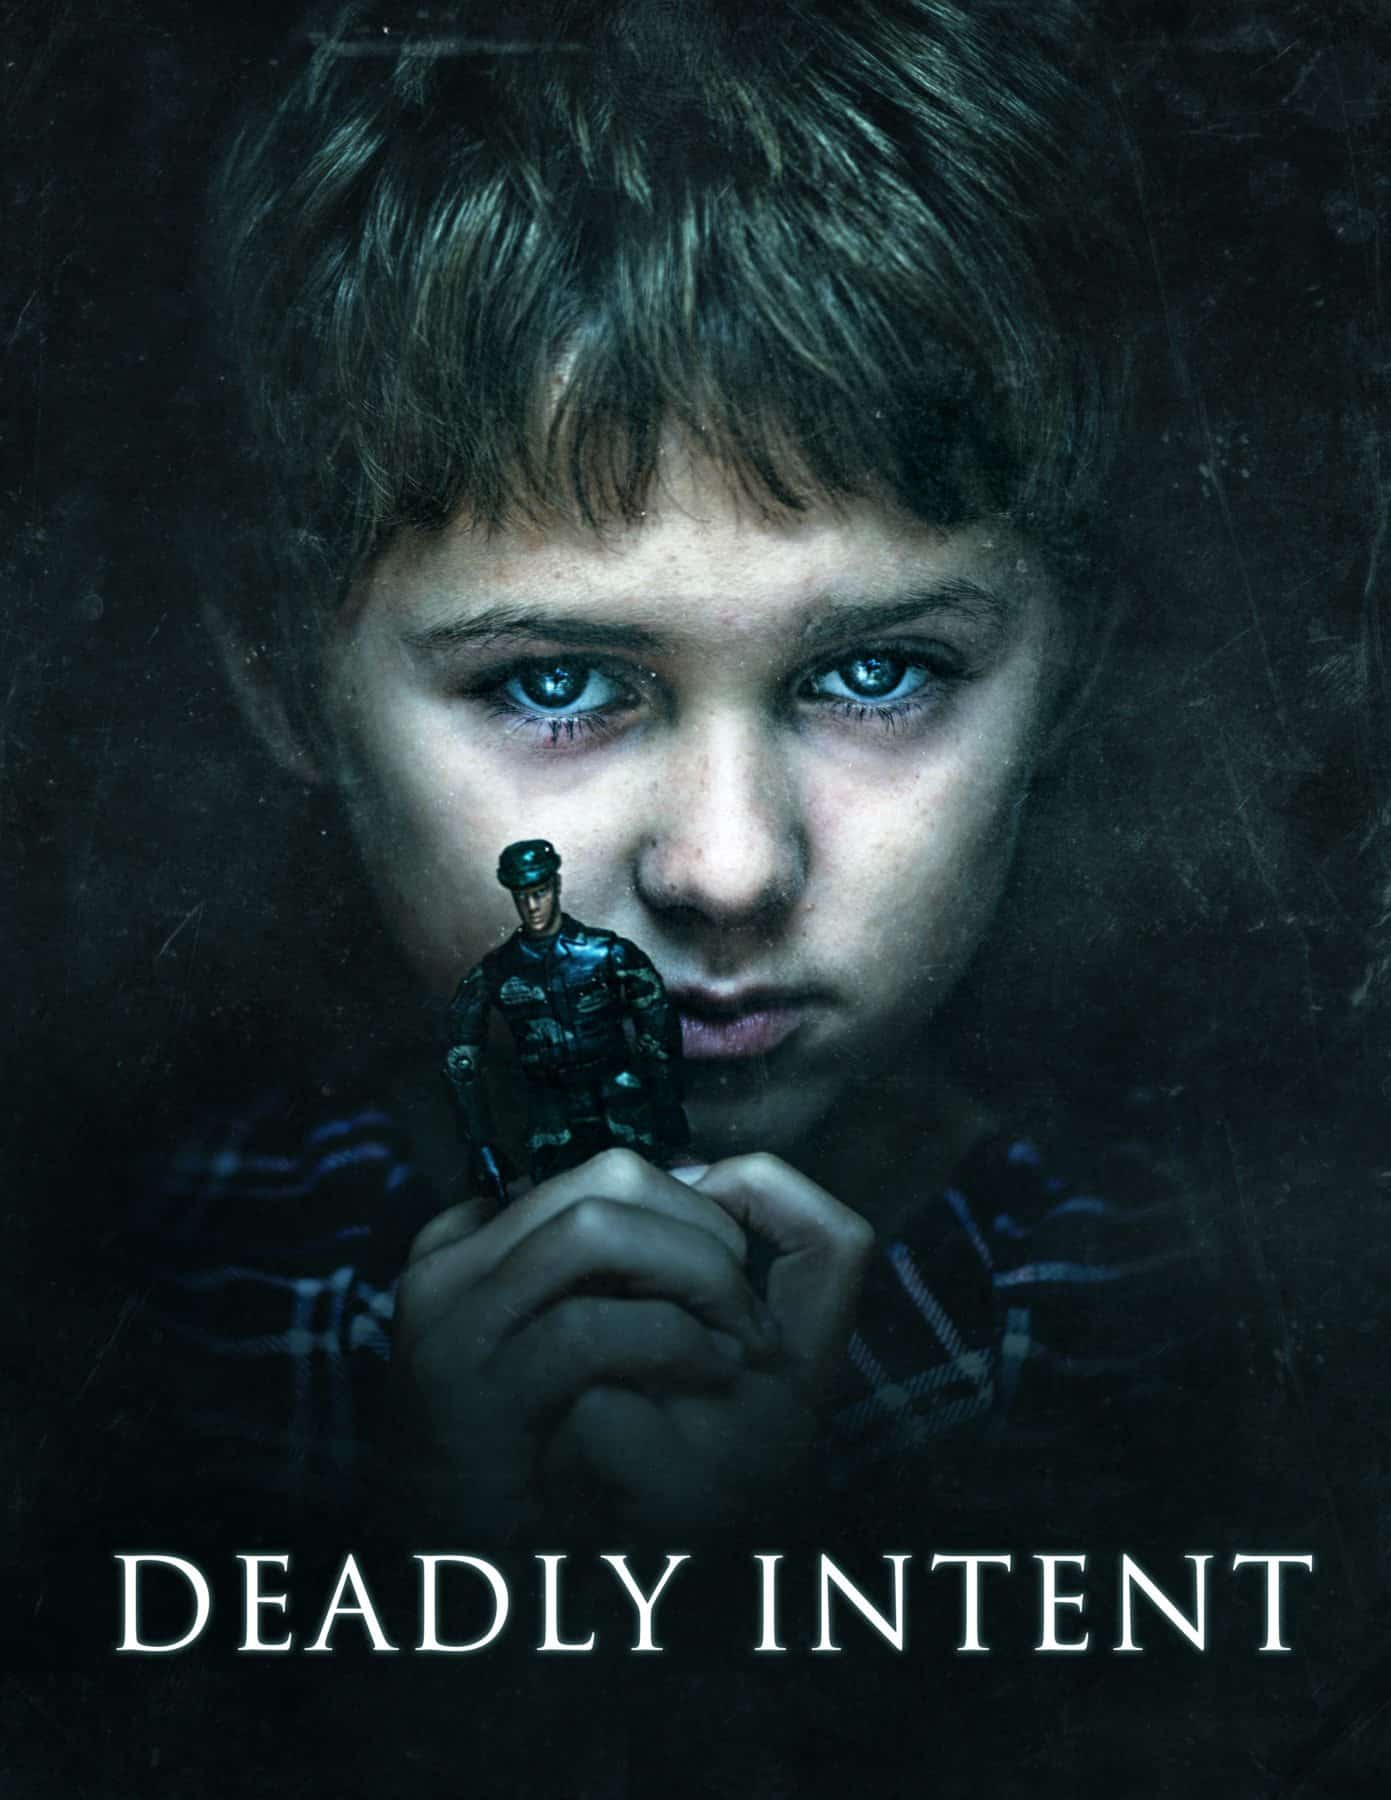 Horror Movie Review: Deadly Intent (2016)